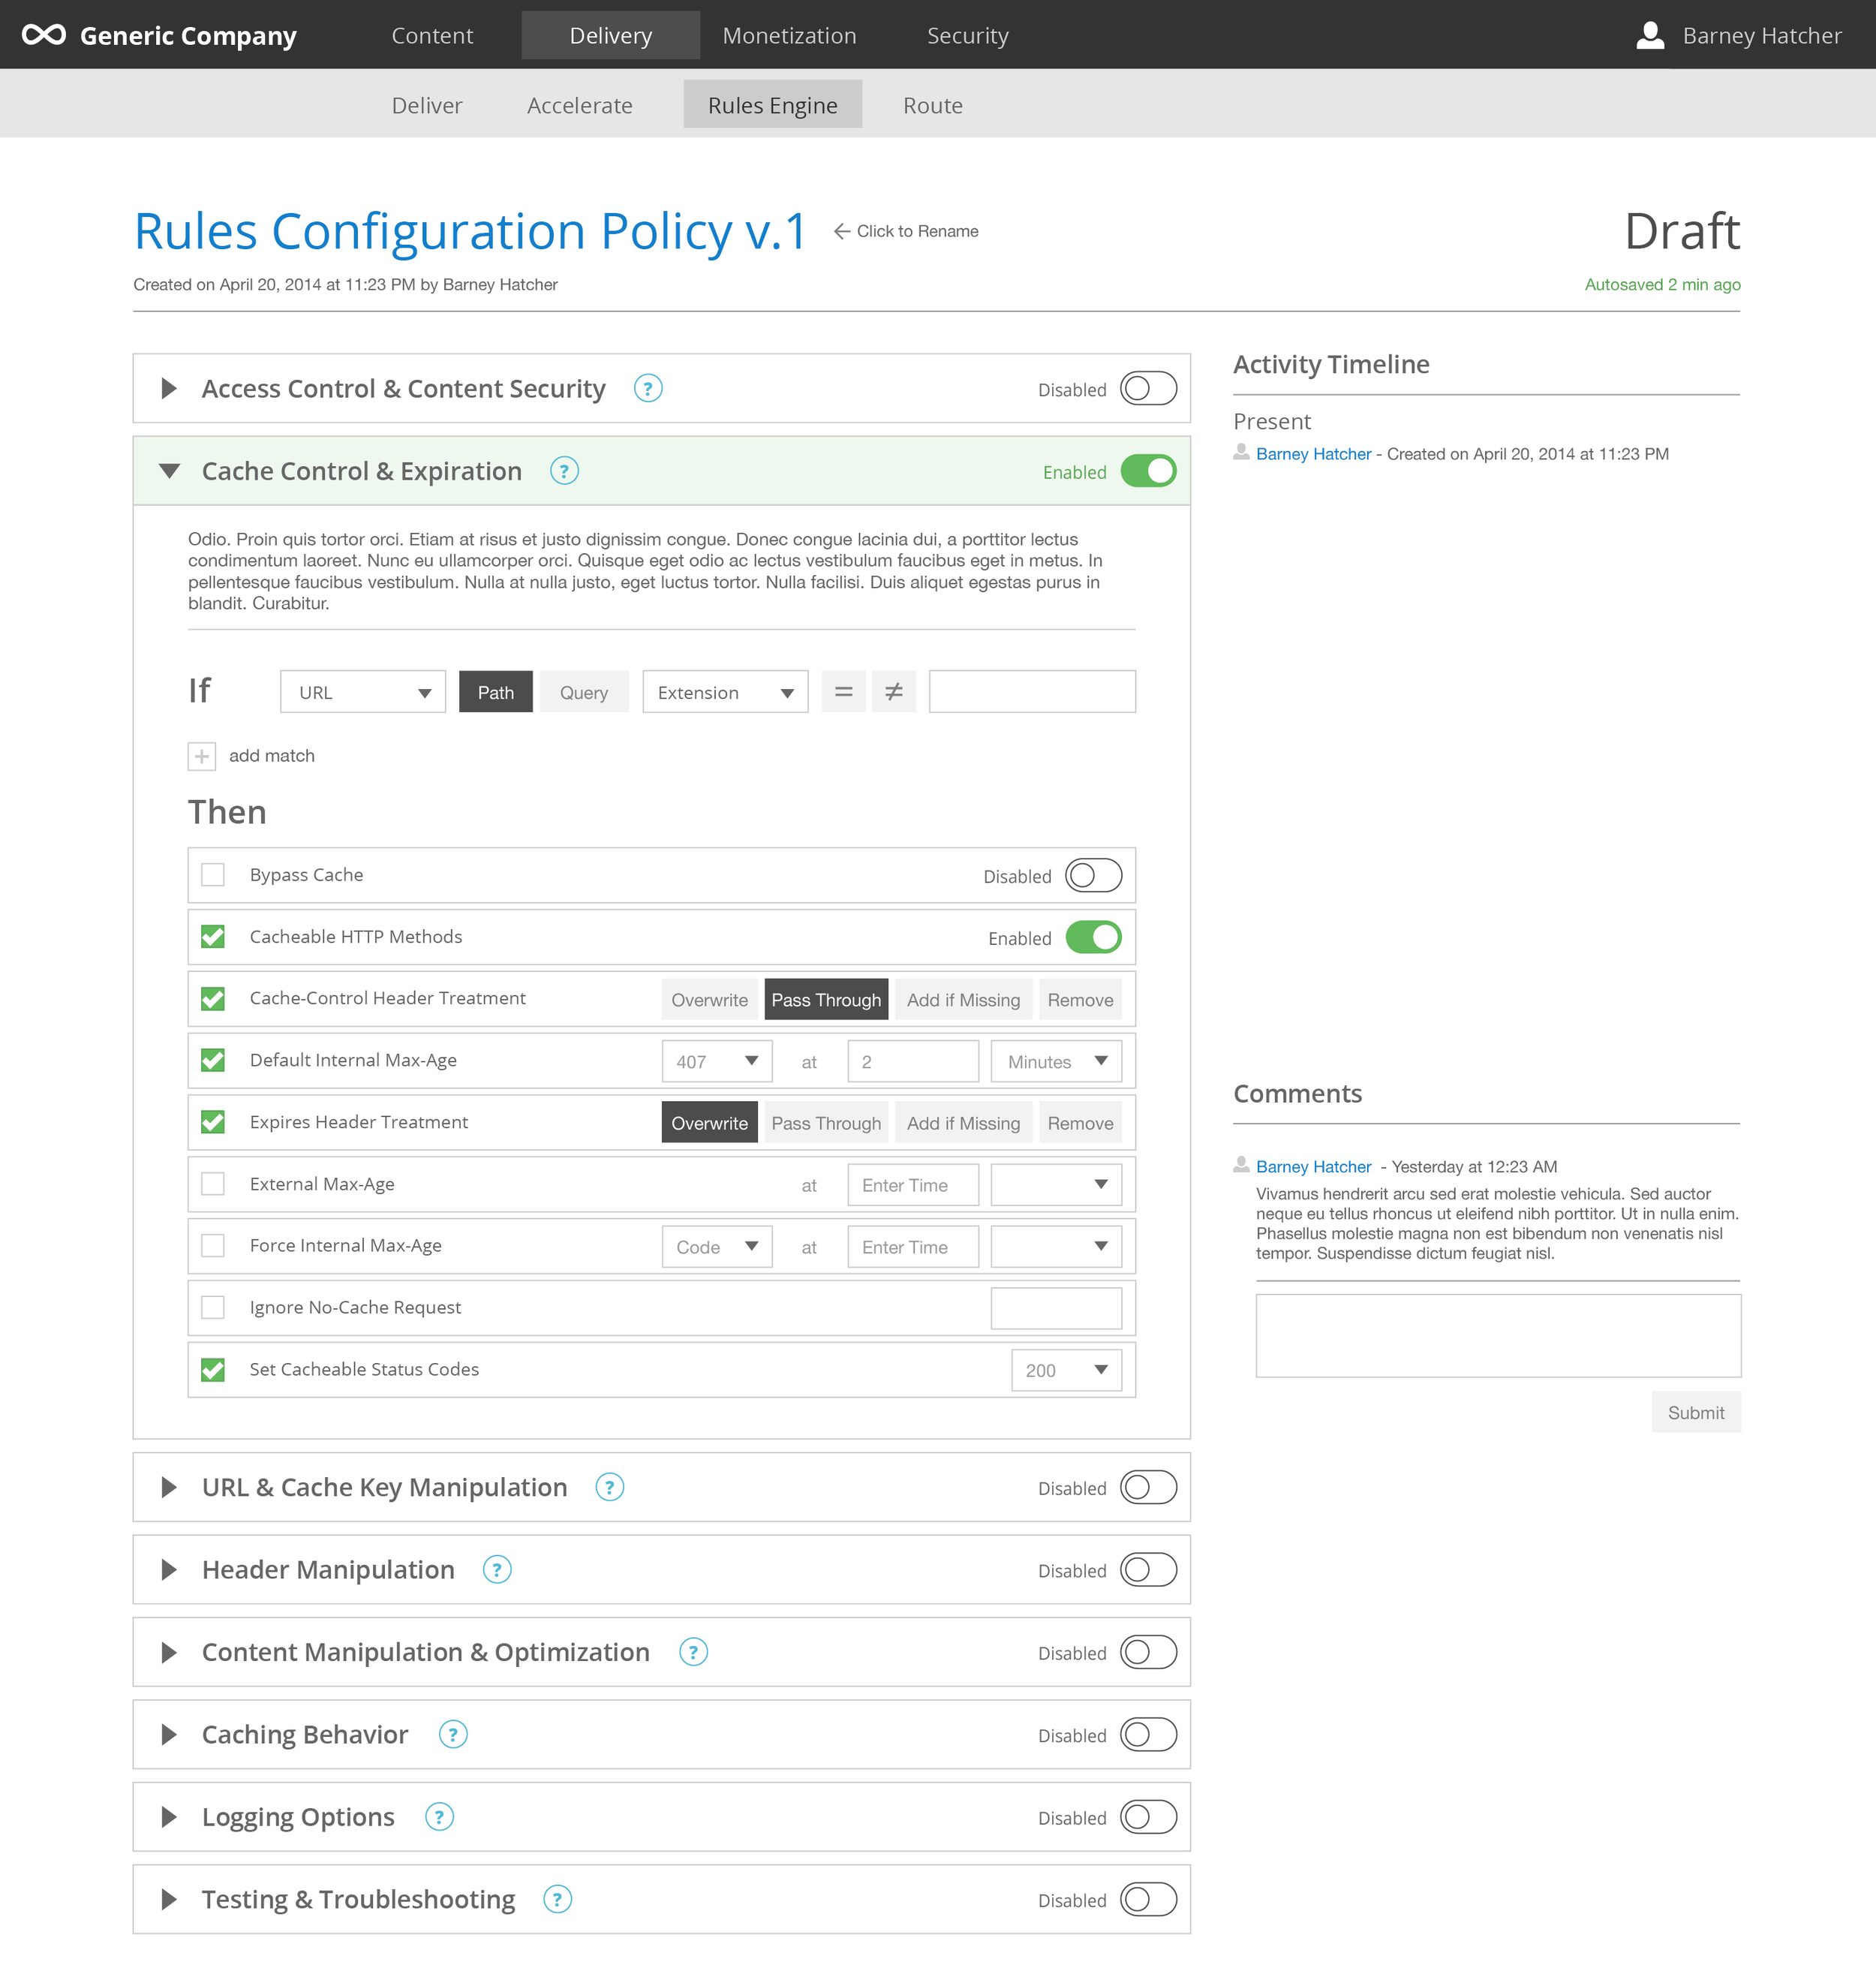 ux-rules-engine-v1_configuration policy-draft-1 enabled-features populated-match-url-extension.png